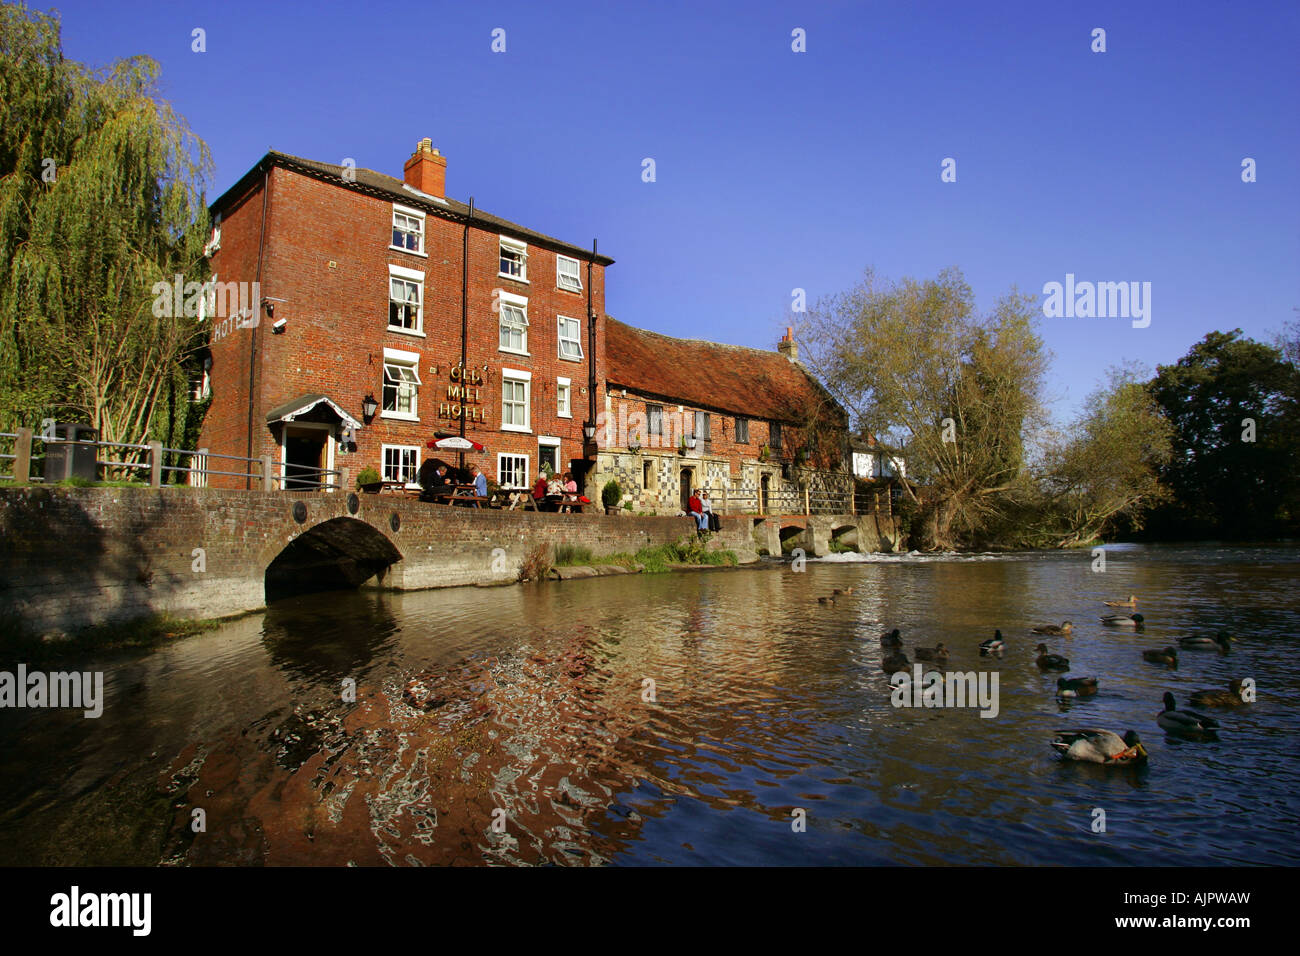 Old Mill Hotel at Harnham in Salisbury, Wiltshire, UK. Stock Photo